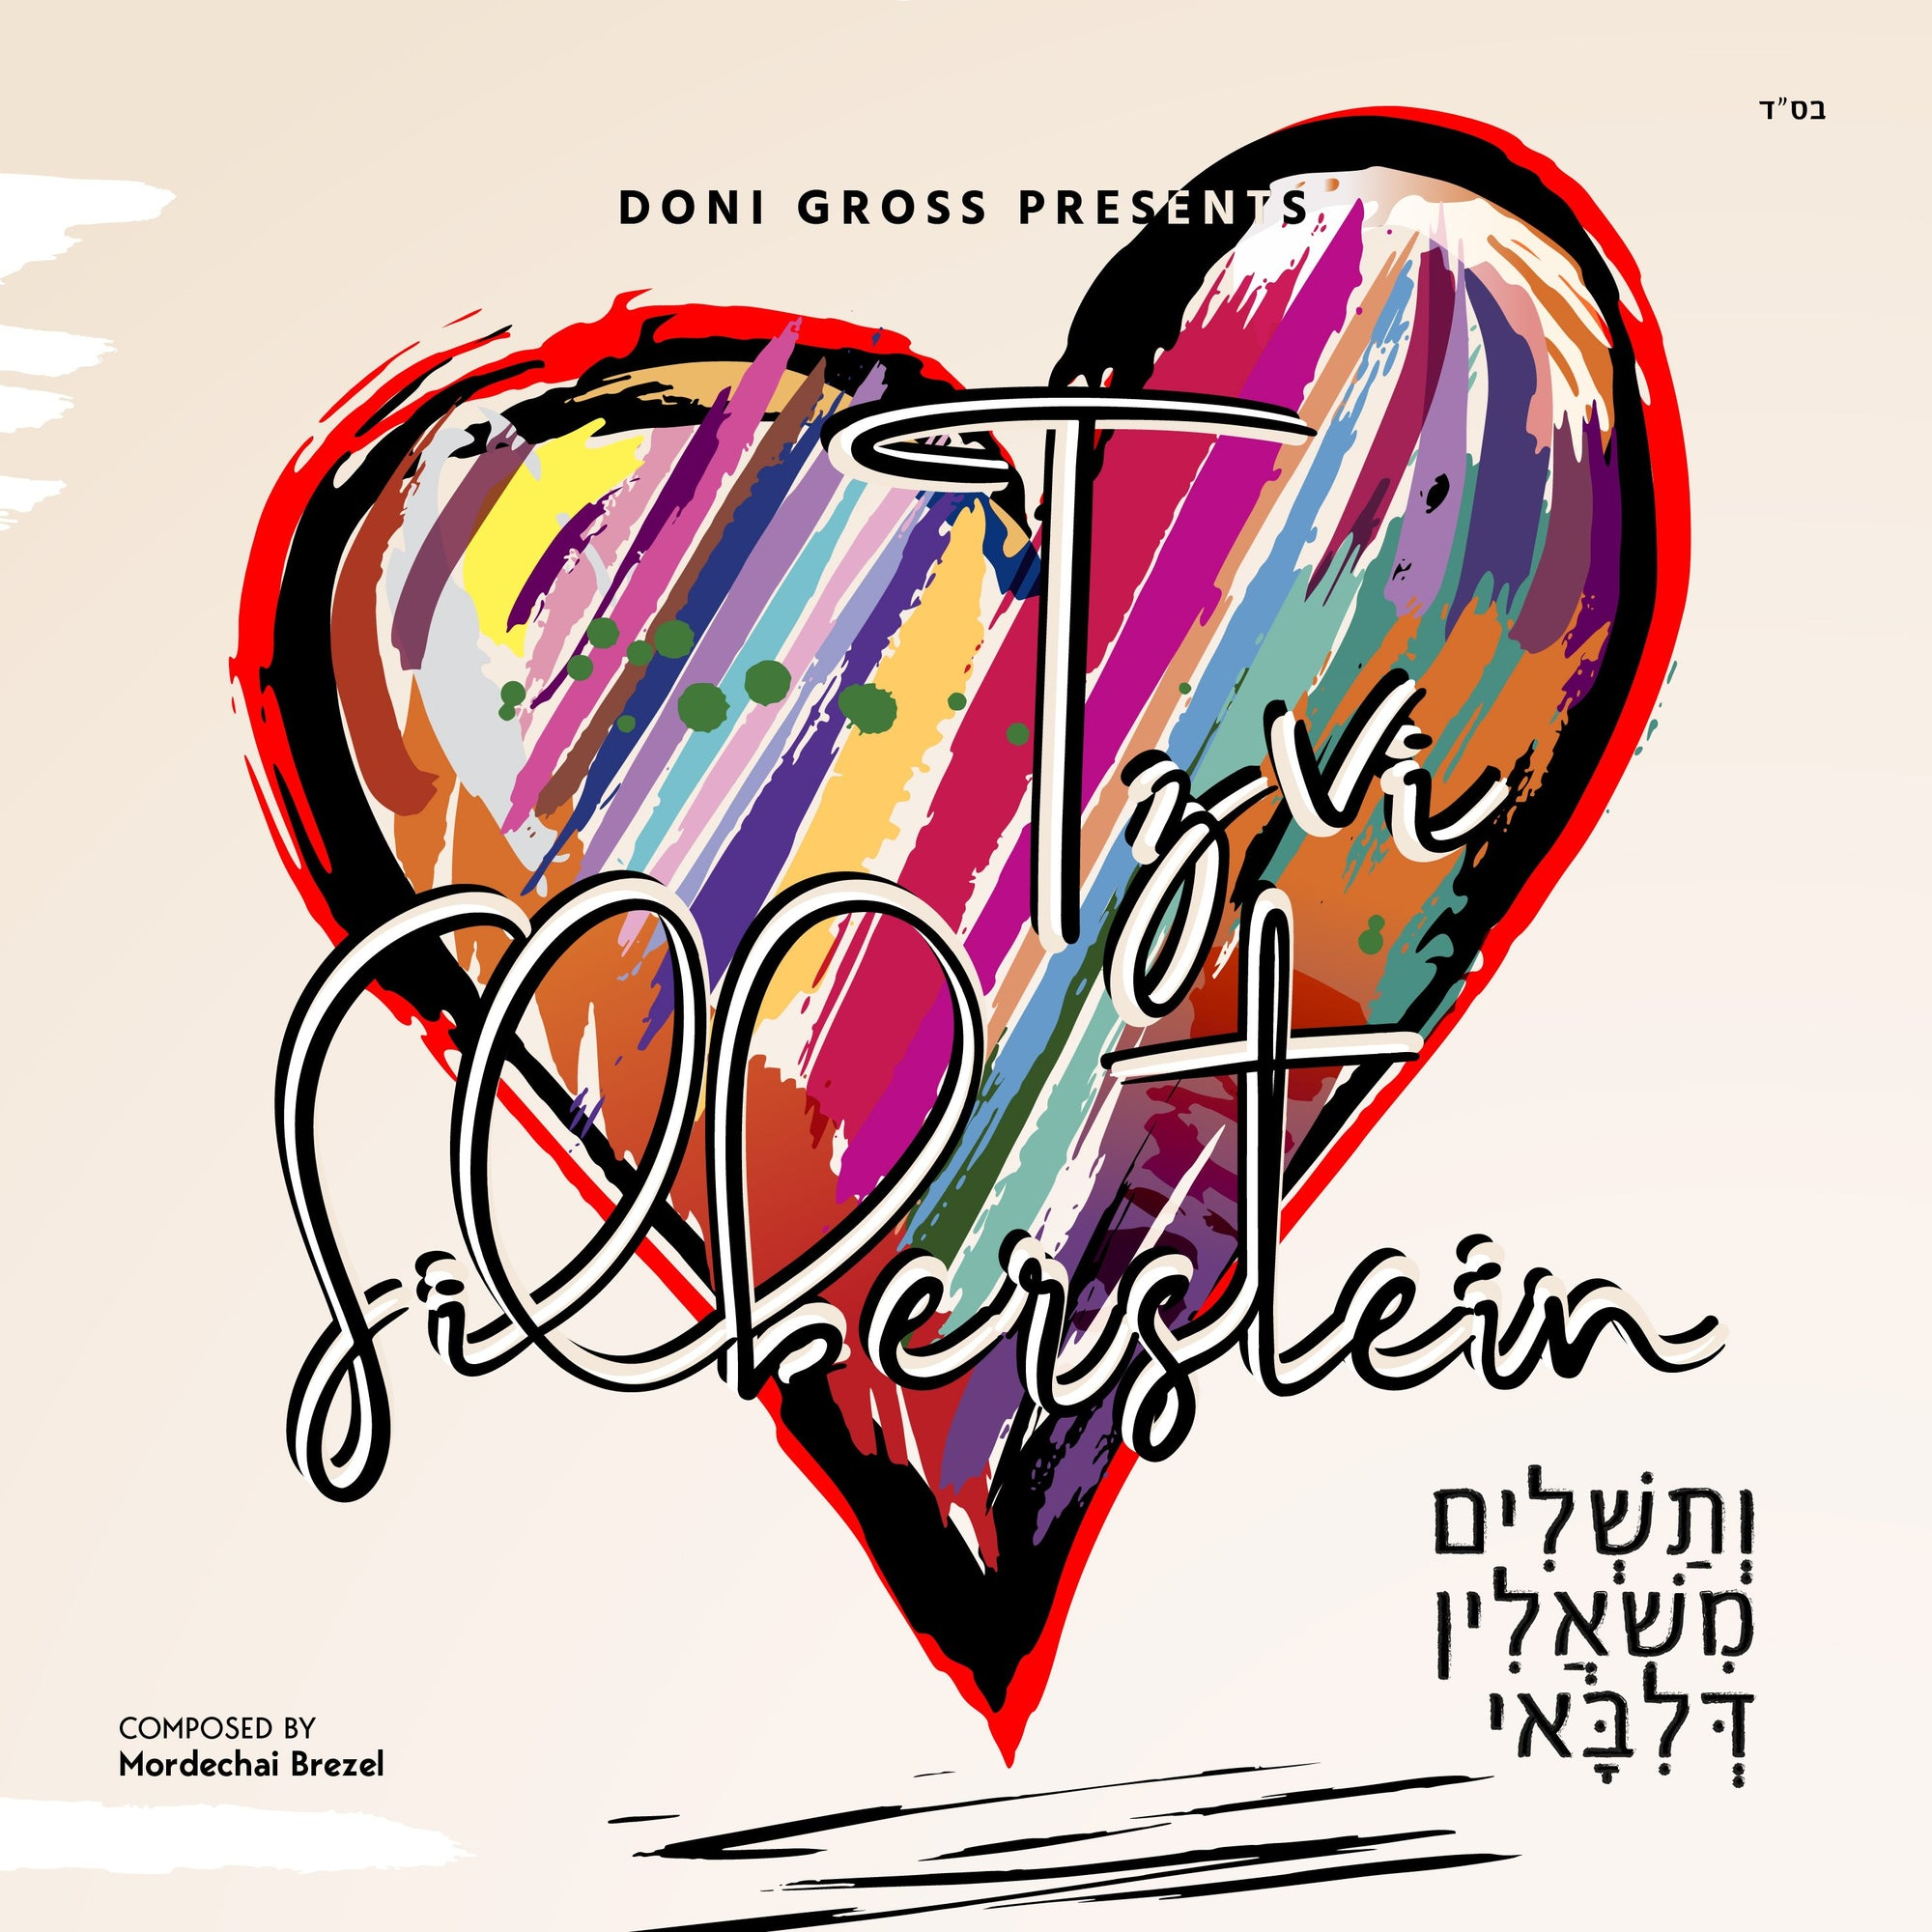 Tzvi Silberstein - Sashlem (Single)